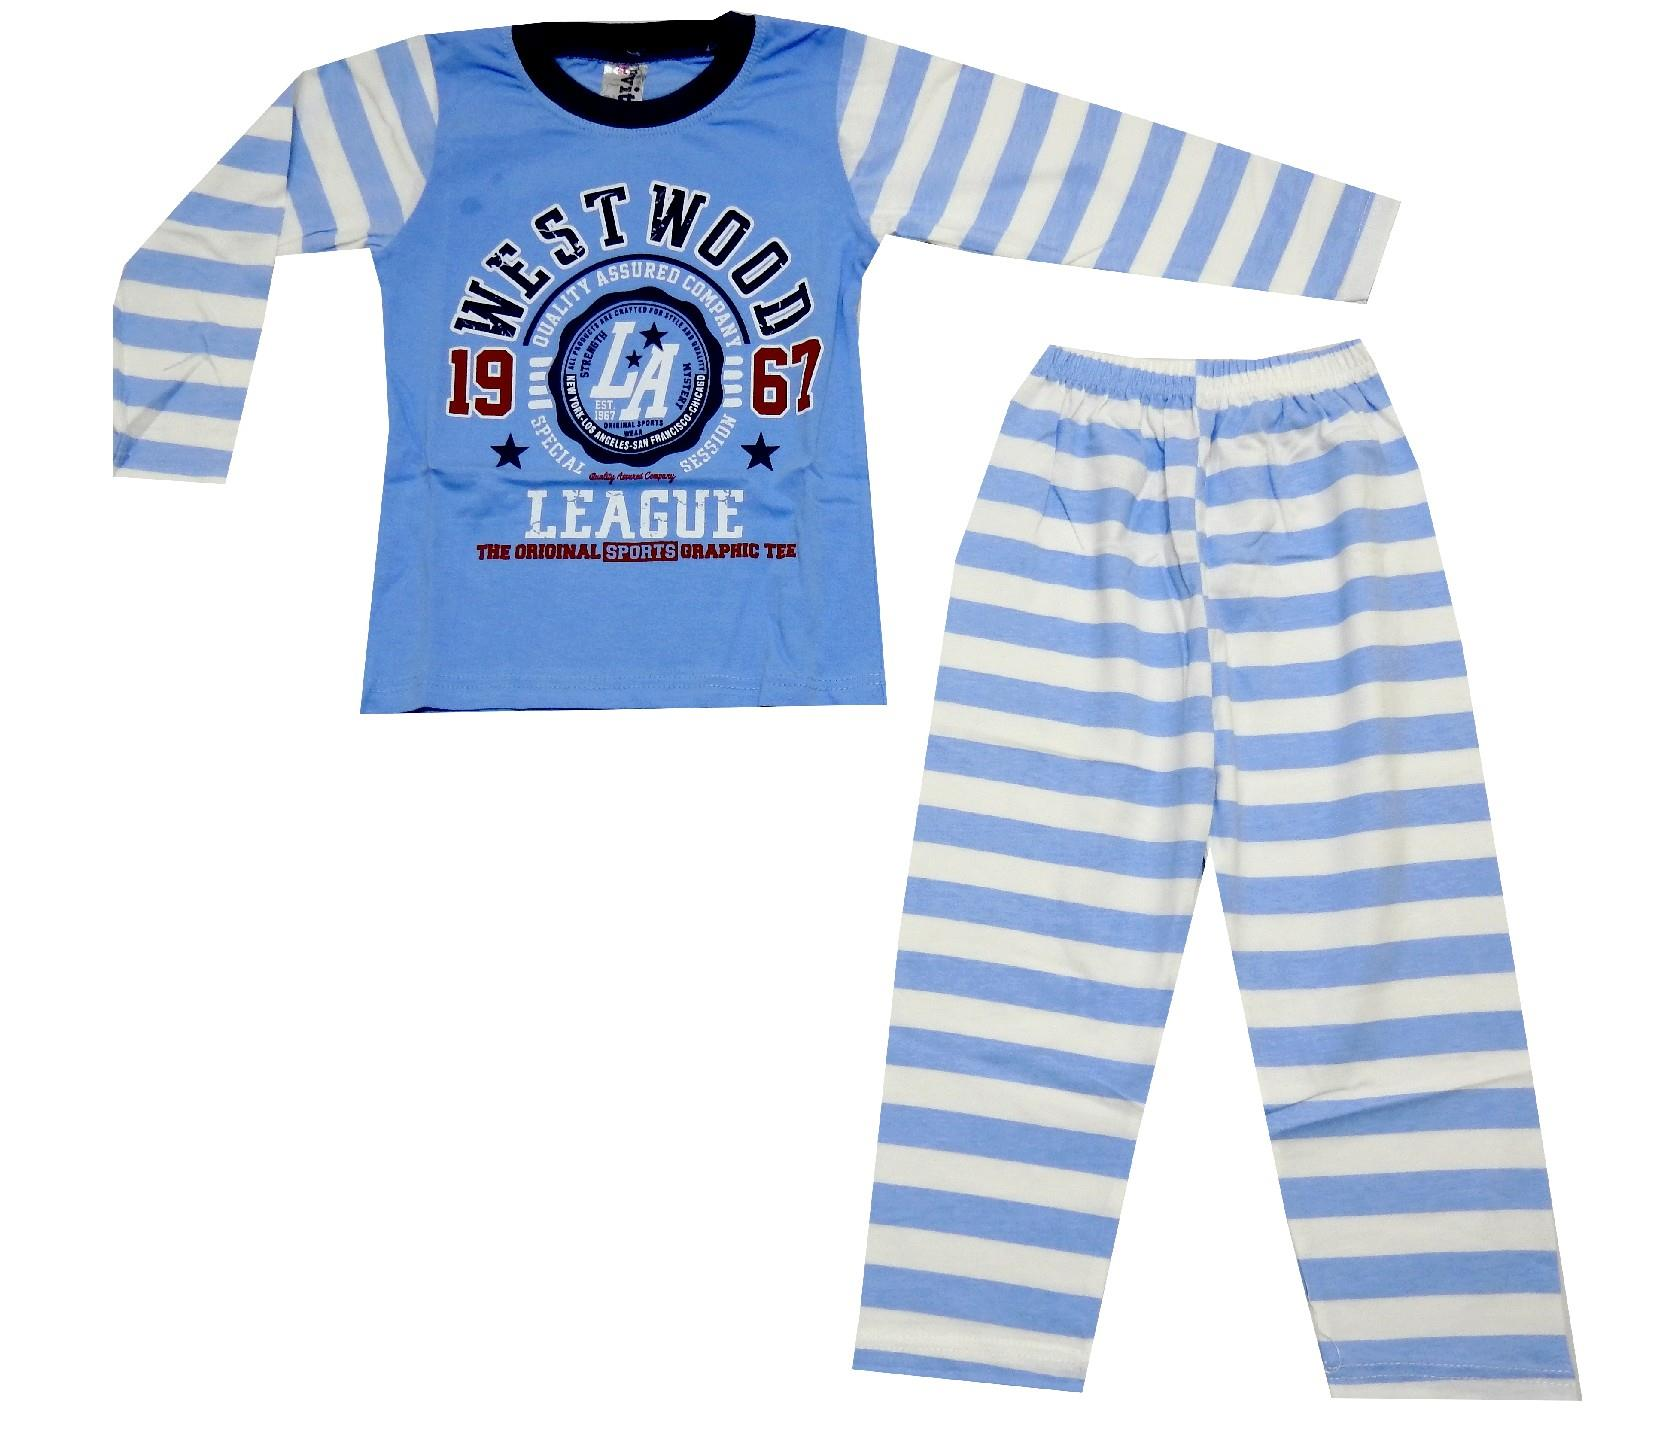 WESTWOOD 1967 STRIPED DESIGN PYJAMAS DOUBLE SET FOR BOY (1-2-3 AGE)